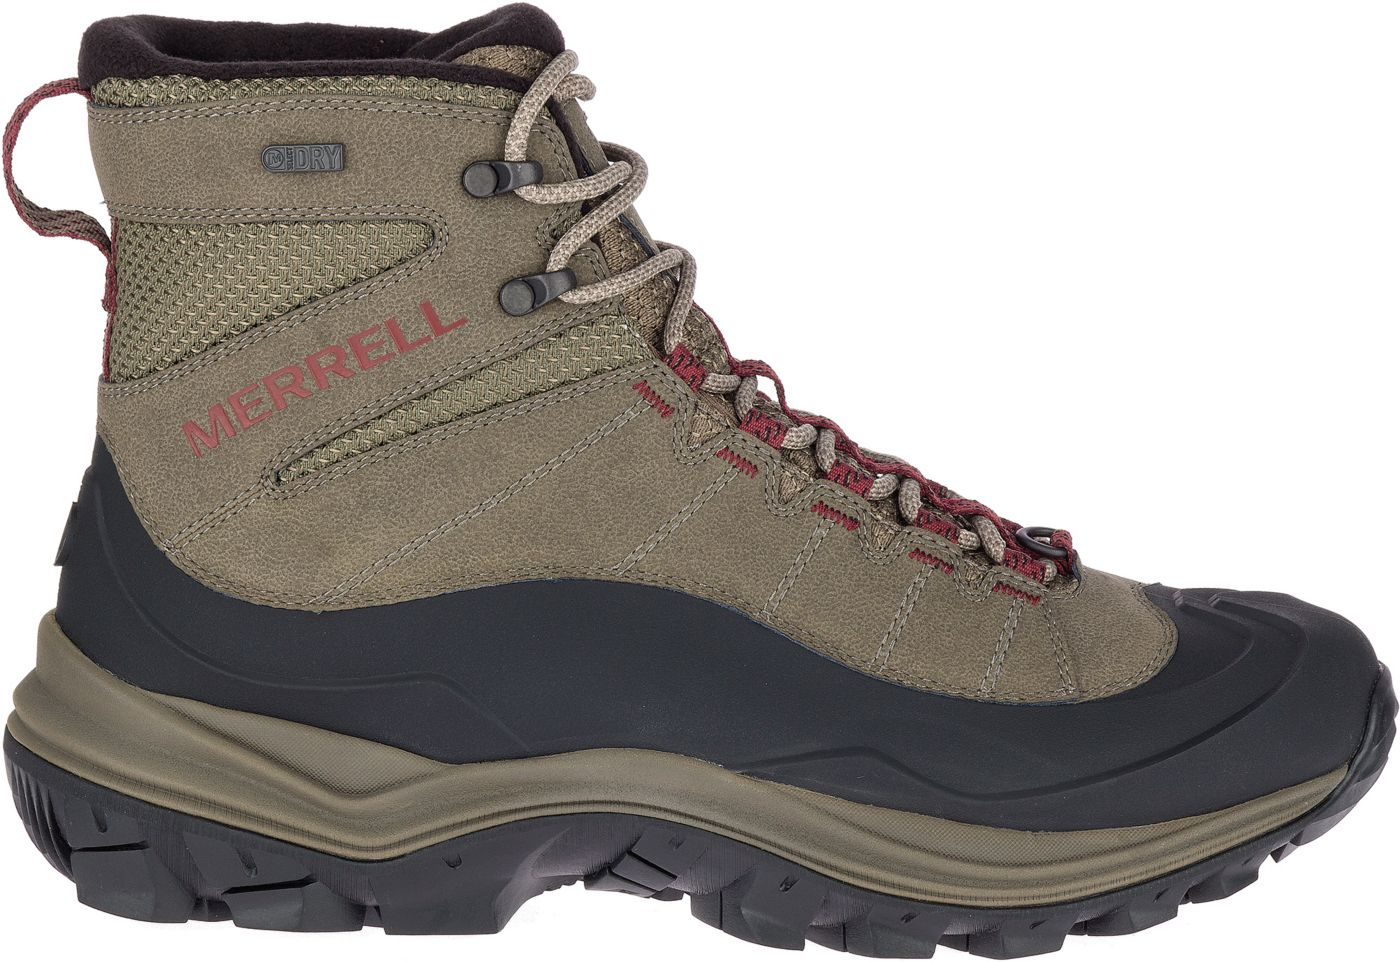 Merrell Men's Thermo Chill Mid Shell 200g Waterproof Hiking Boots